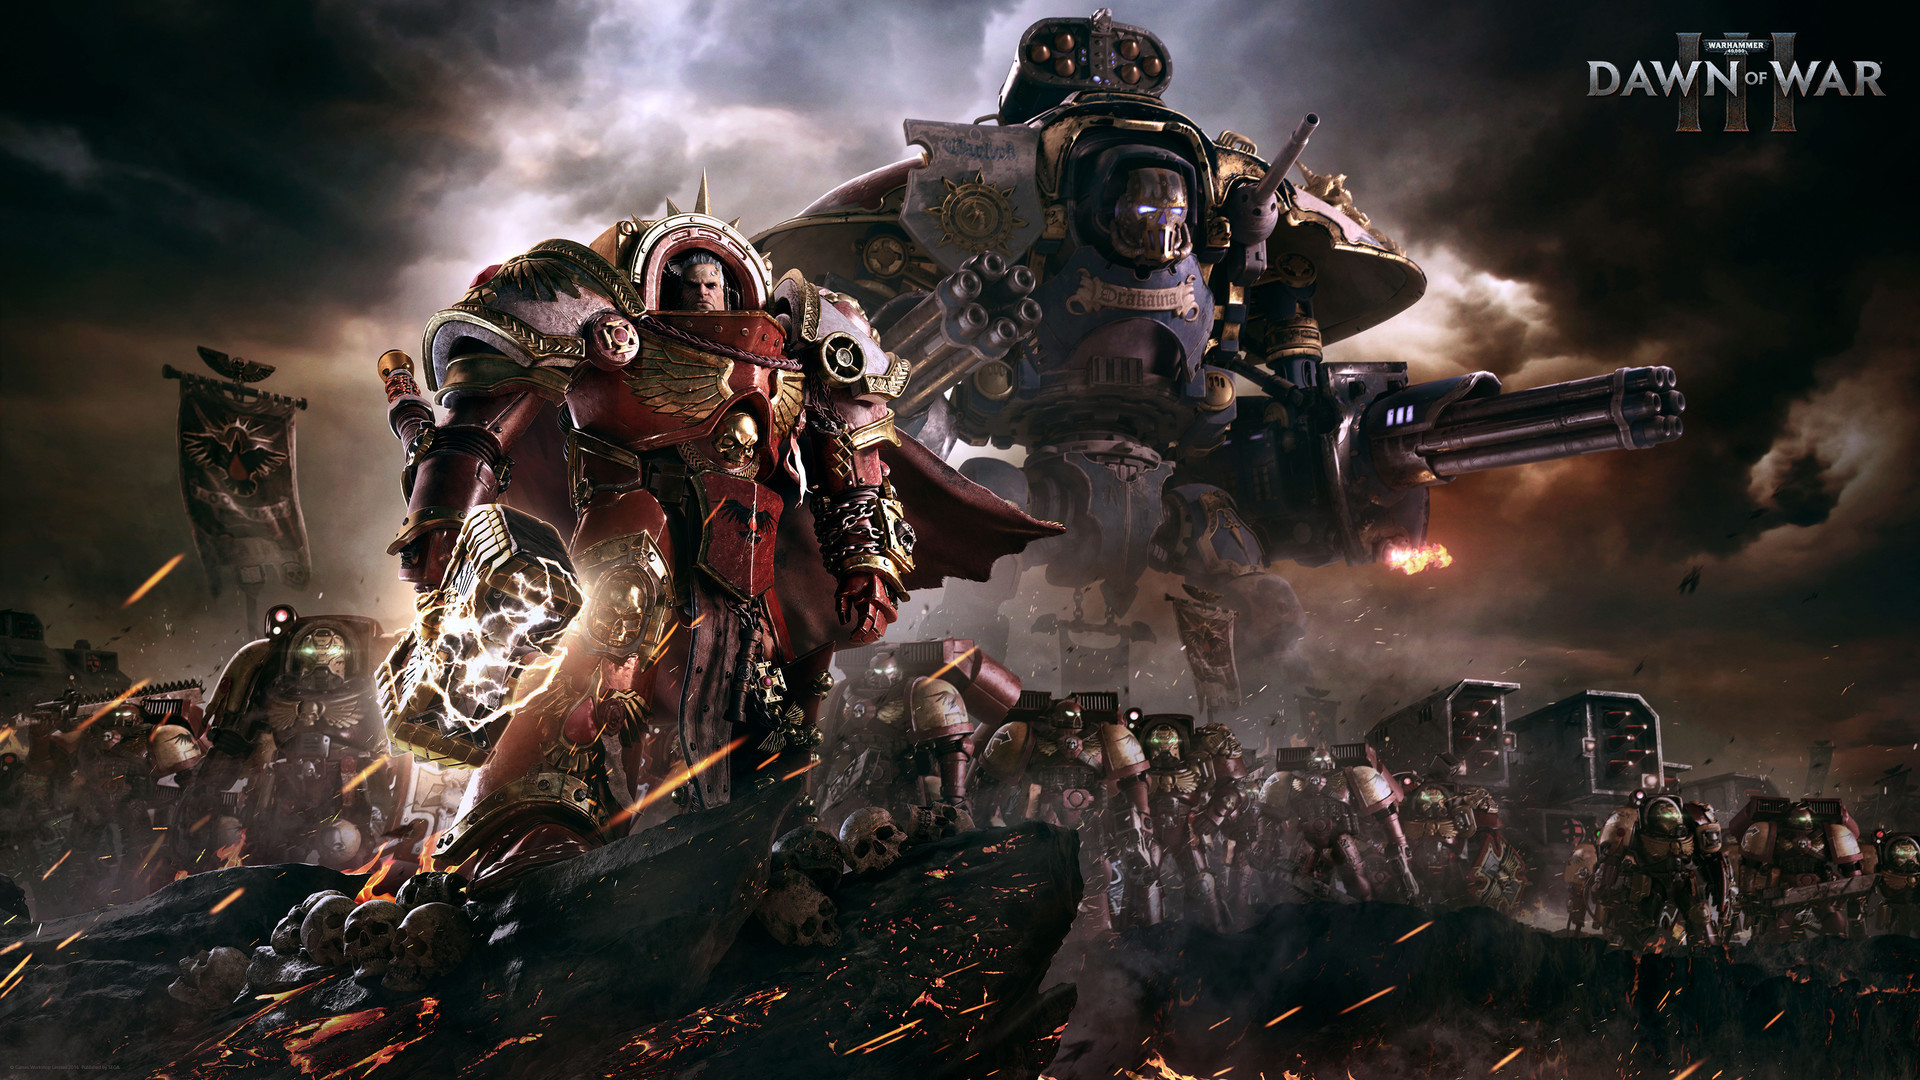 Res: 1920x1080, Space Marines Wallpaper 69+